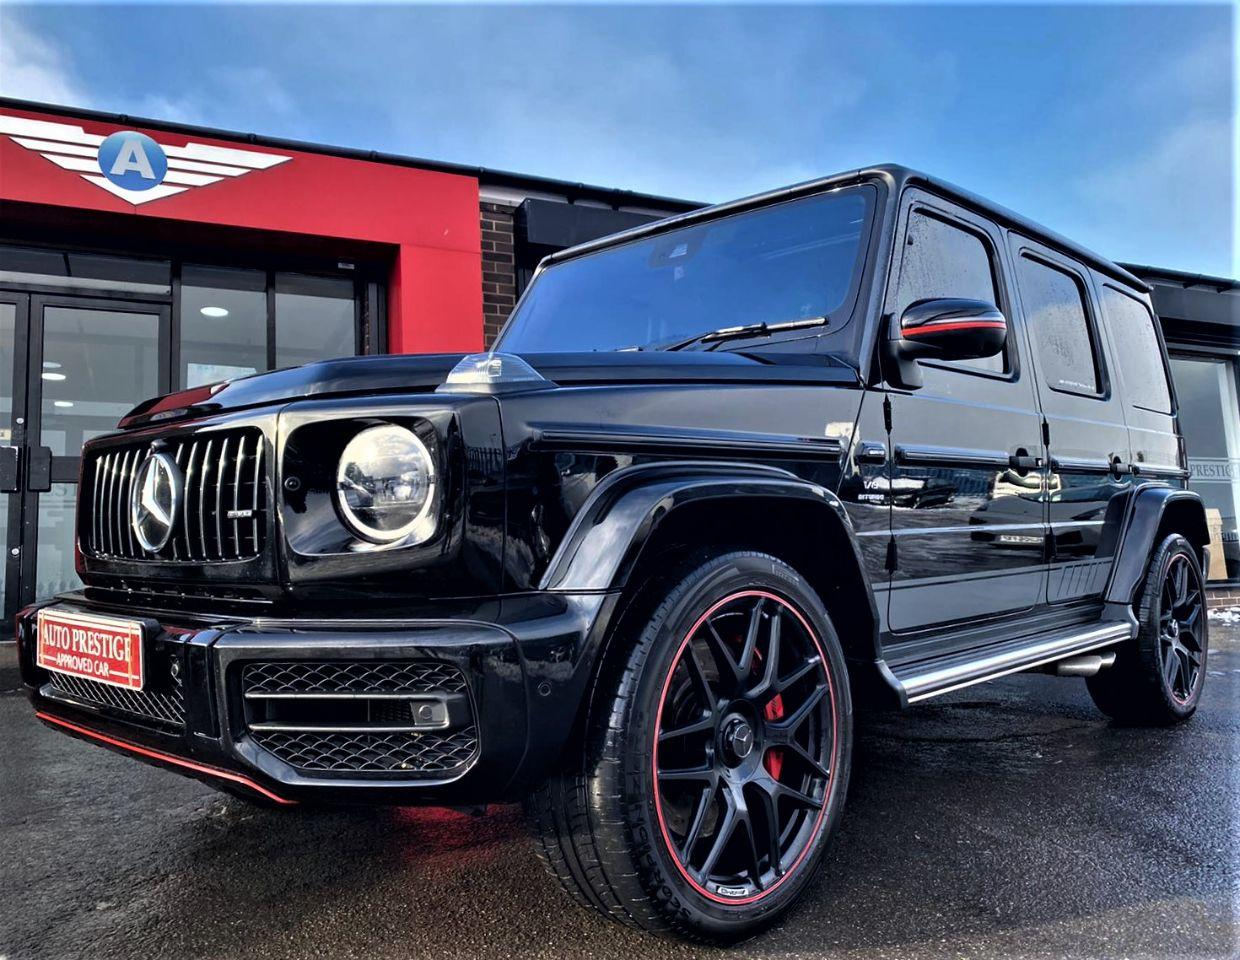 Mercedes-Benz G Class 4.0 G63 5dr 9G-Tronic AS NEW BLACK HUGE SPECIFICATION Estate Petrol Black at Autoprestige Bradford